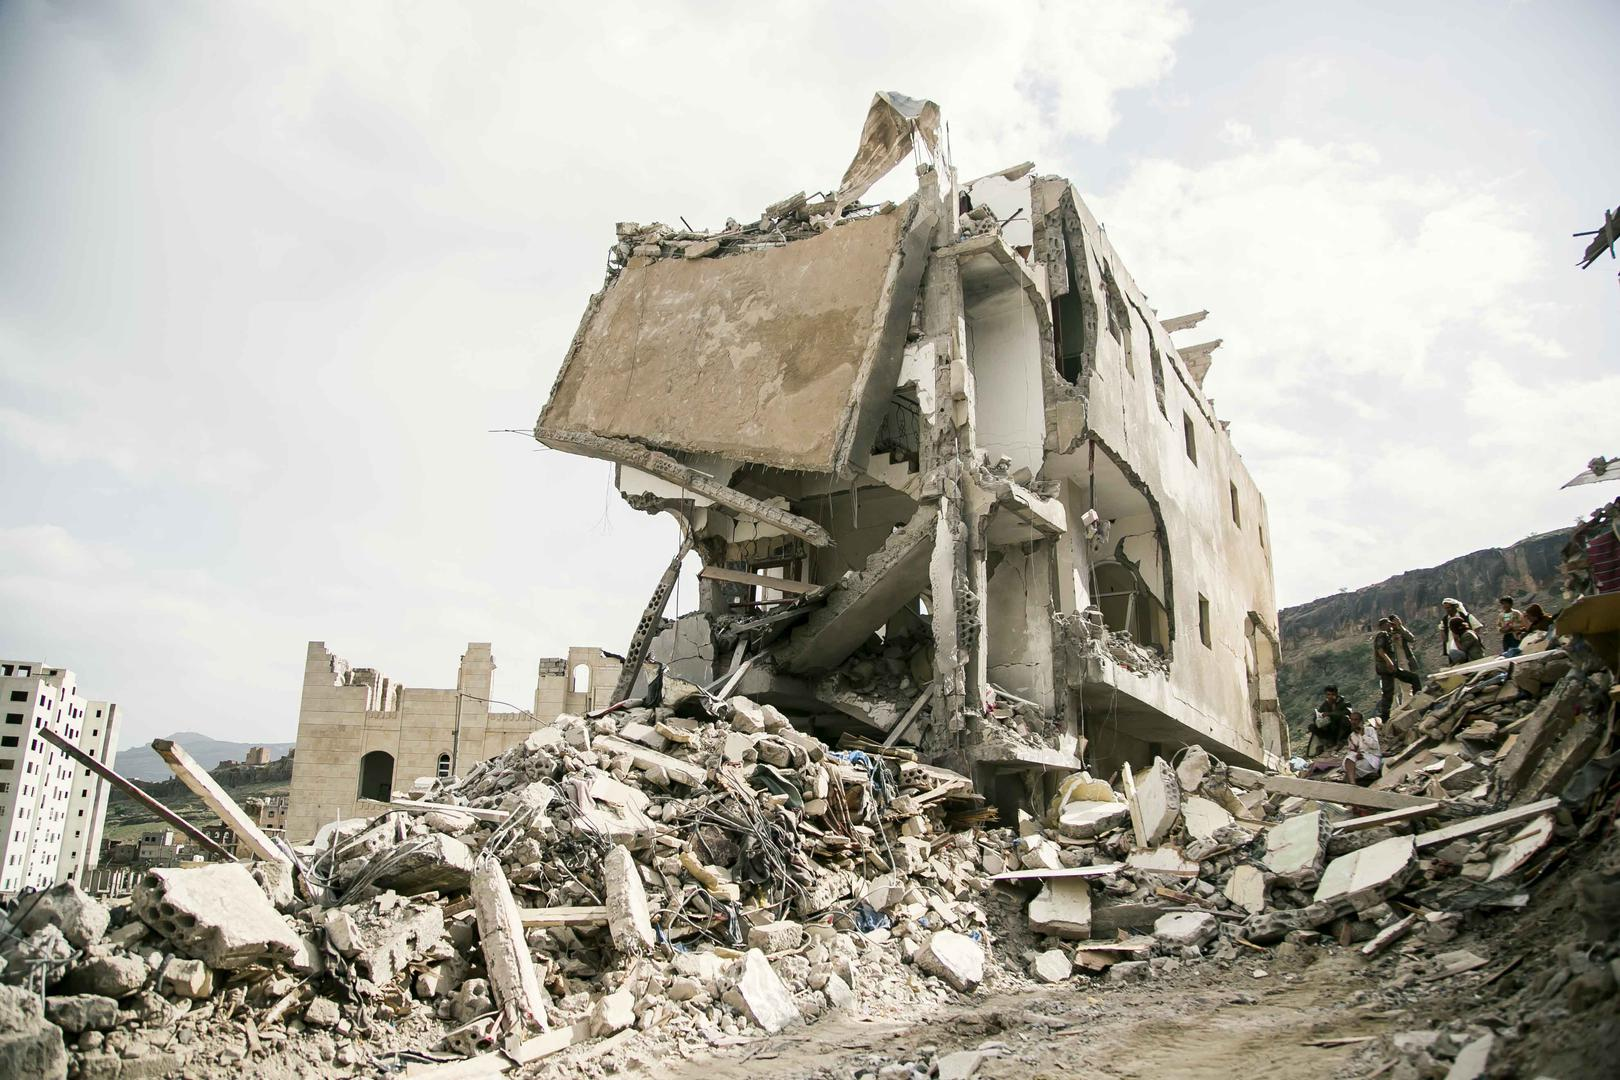 Saudi-led coalition aircraft struck three apartment buildings in Faj Attan, a densely populated neighborhood in Sanaa, on August 25, 2017. Two of the buildings were completely destroyed and the third suffered extensive damage. Saudi-led coalition aircraft